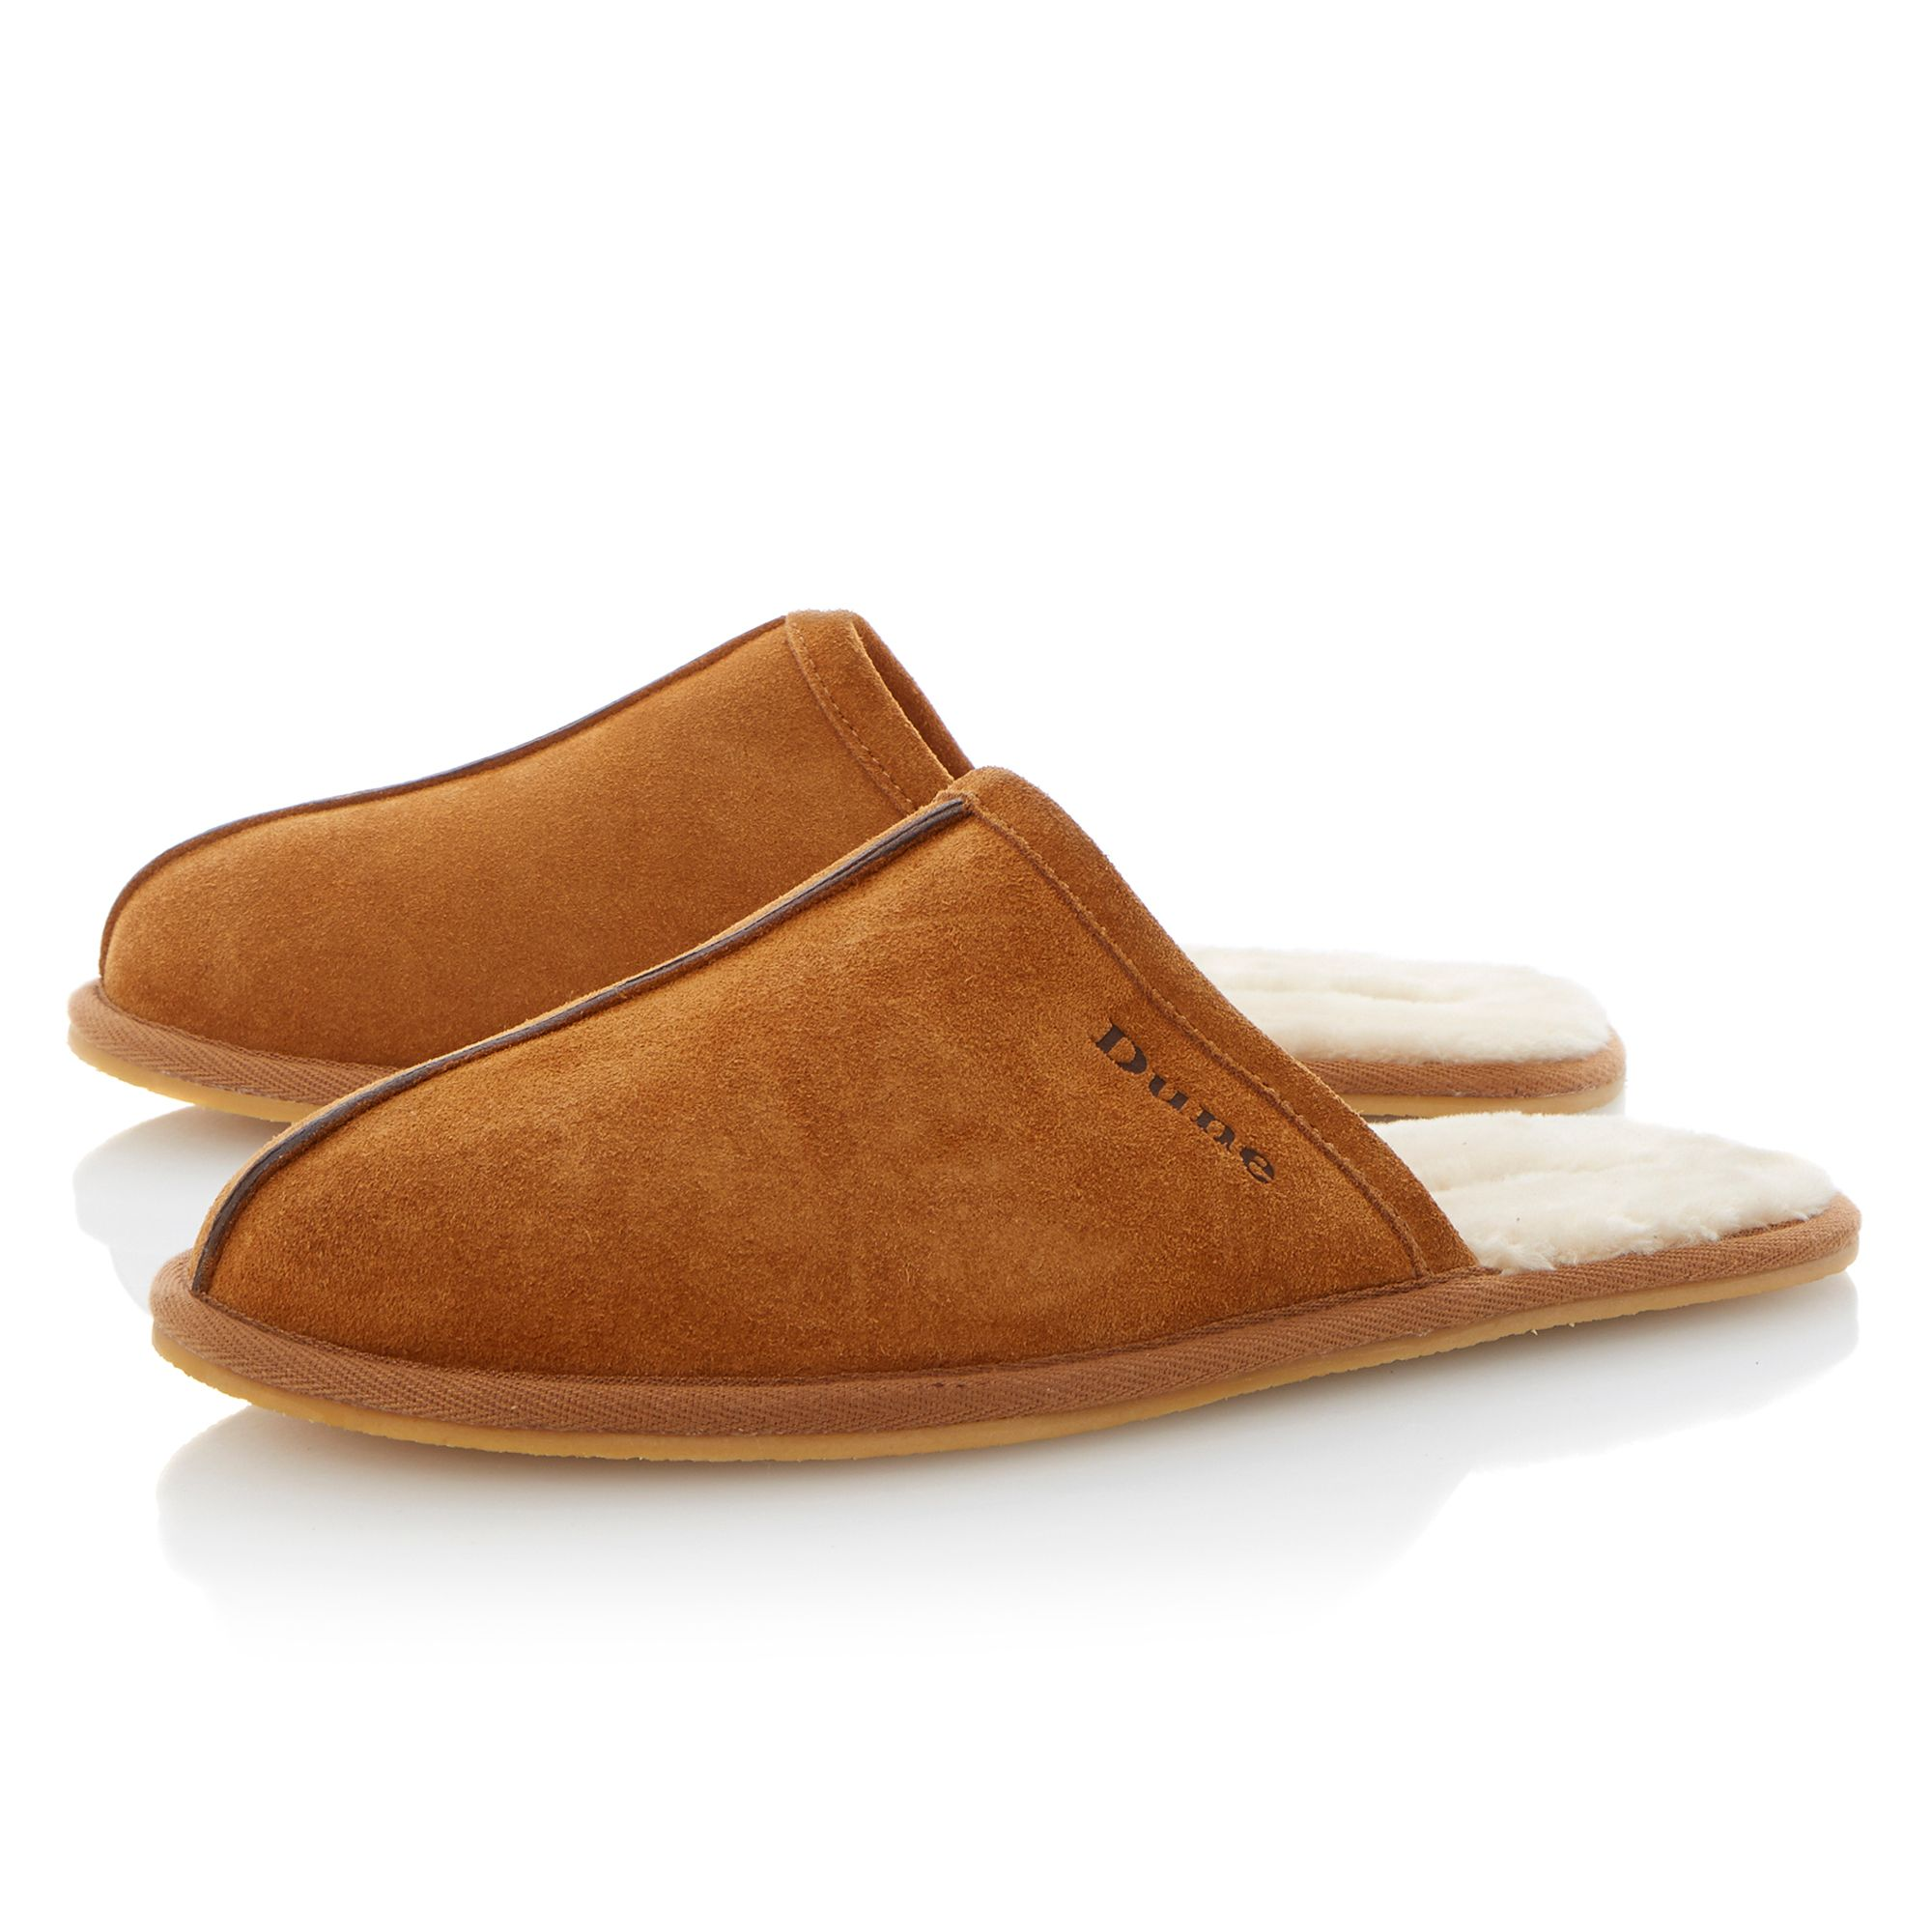 Flintoff faux fur-lined mule slipper